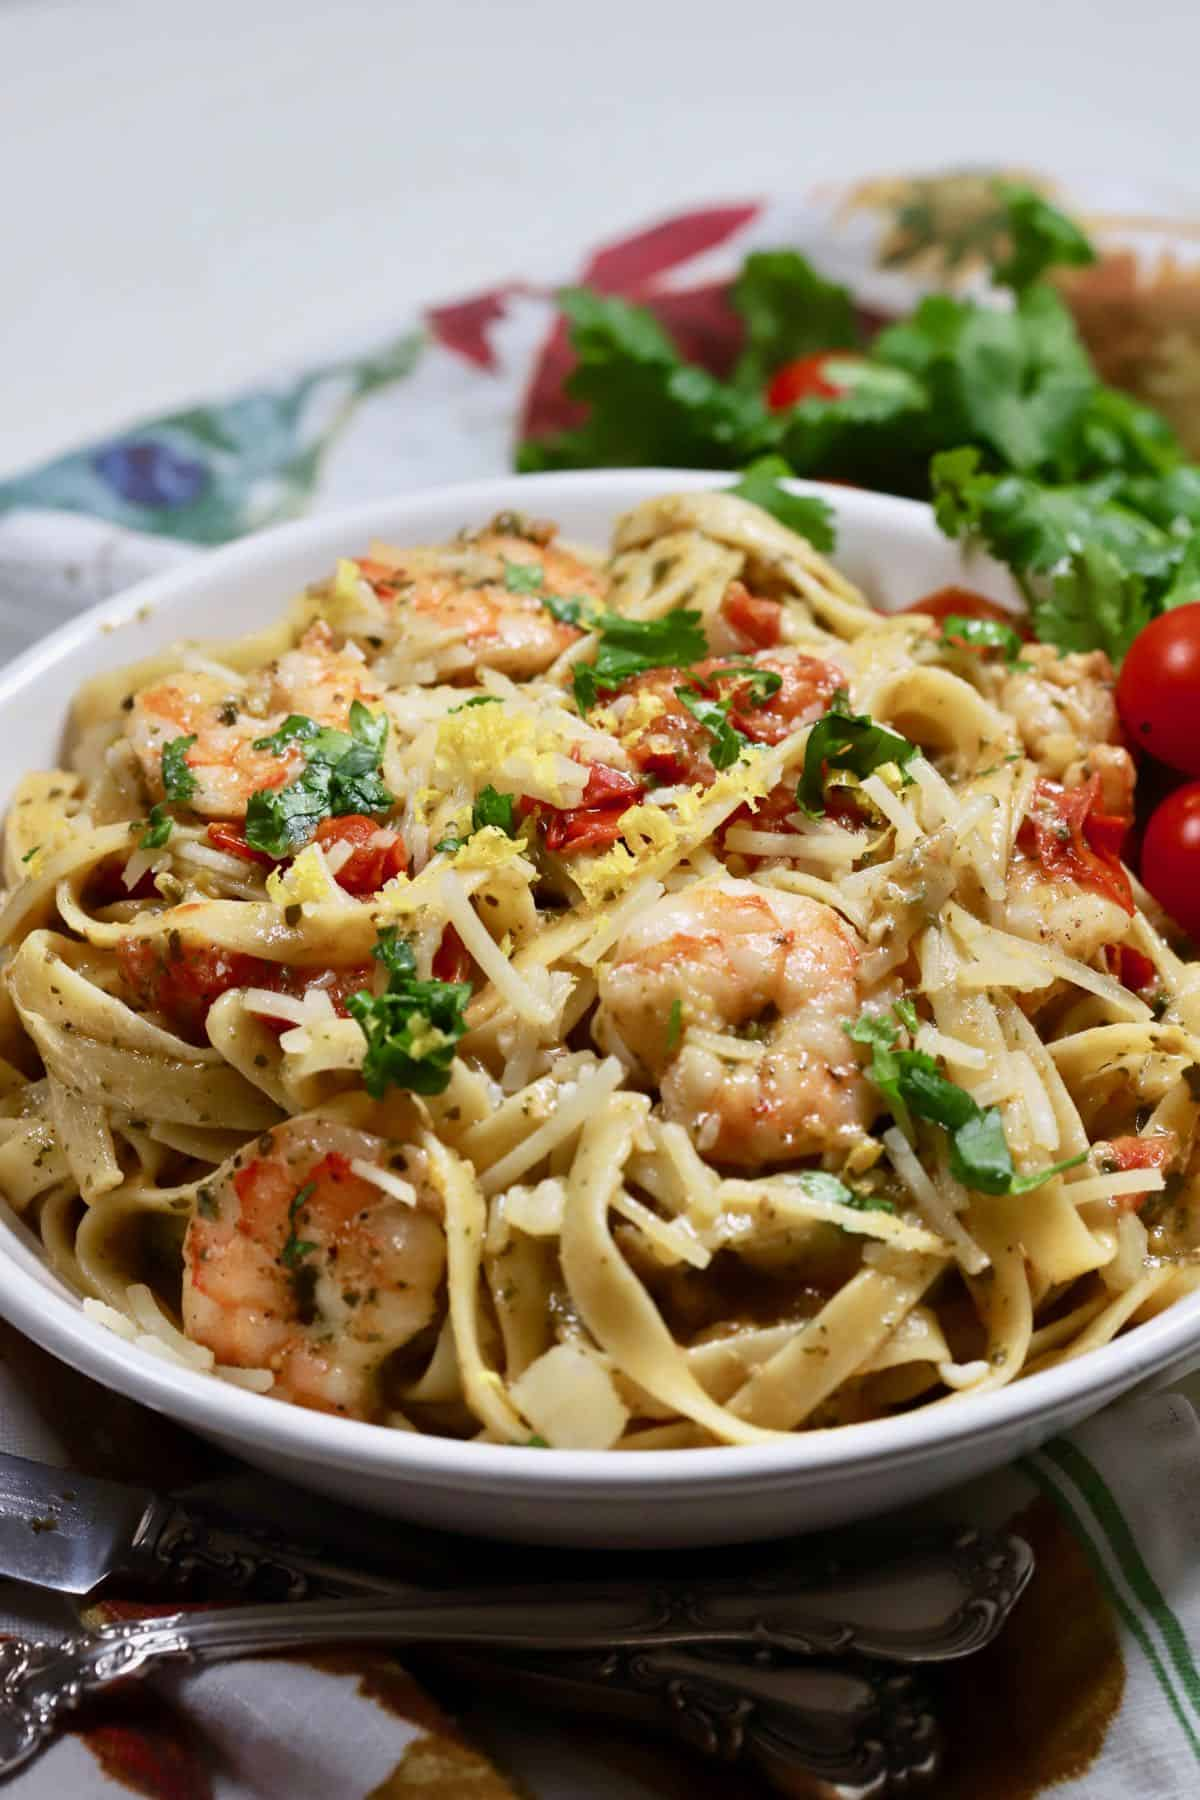 A white bowl with pasta and shrimp.